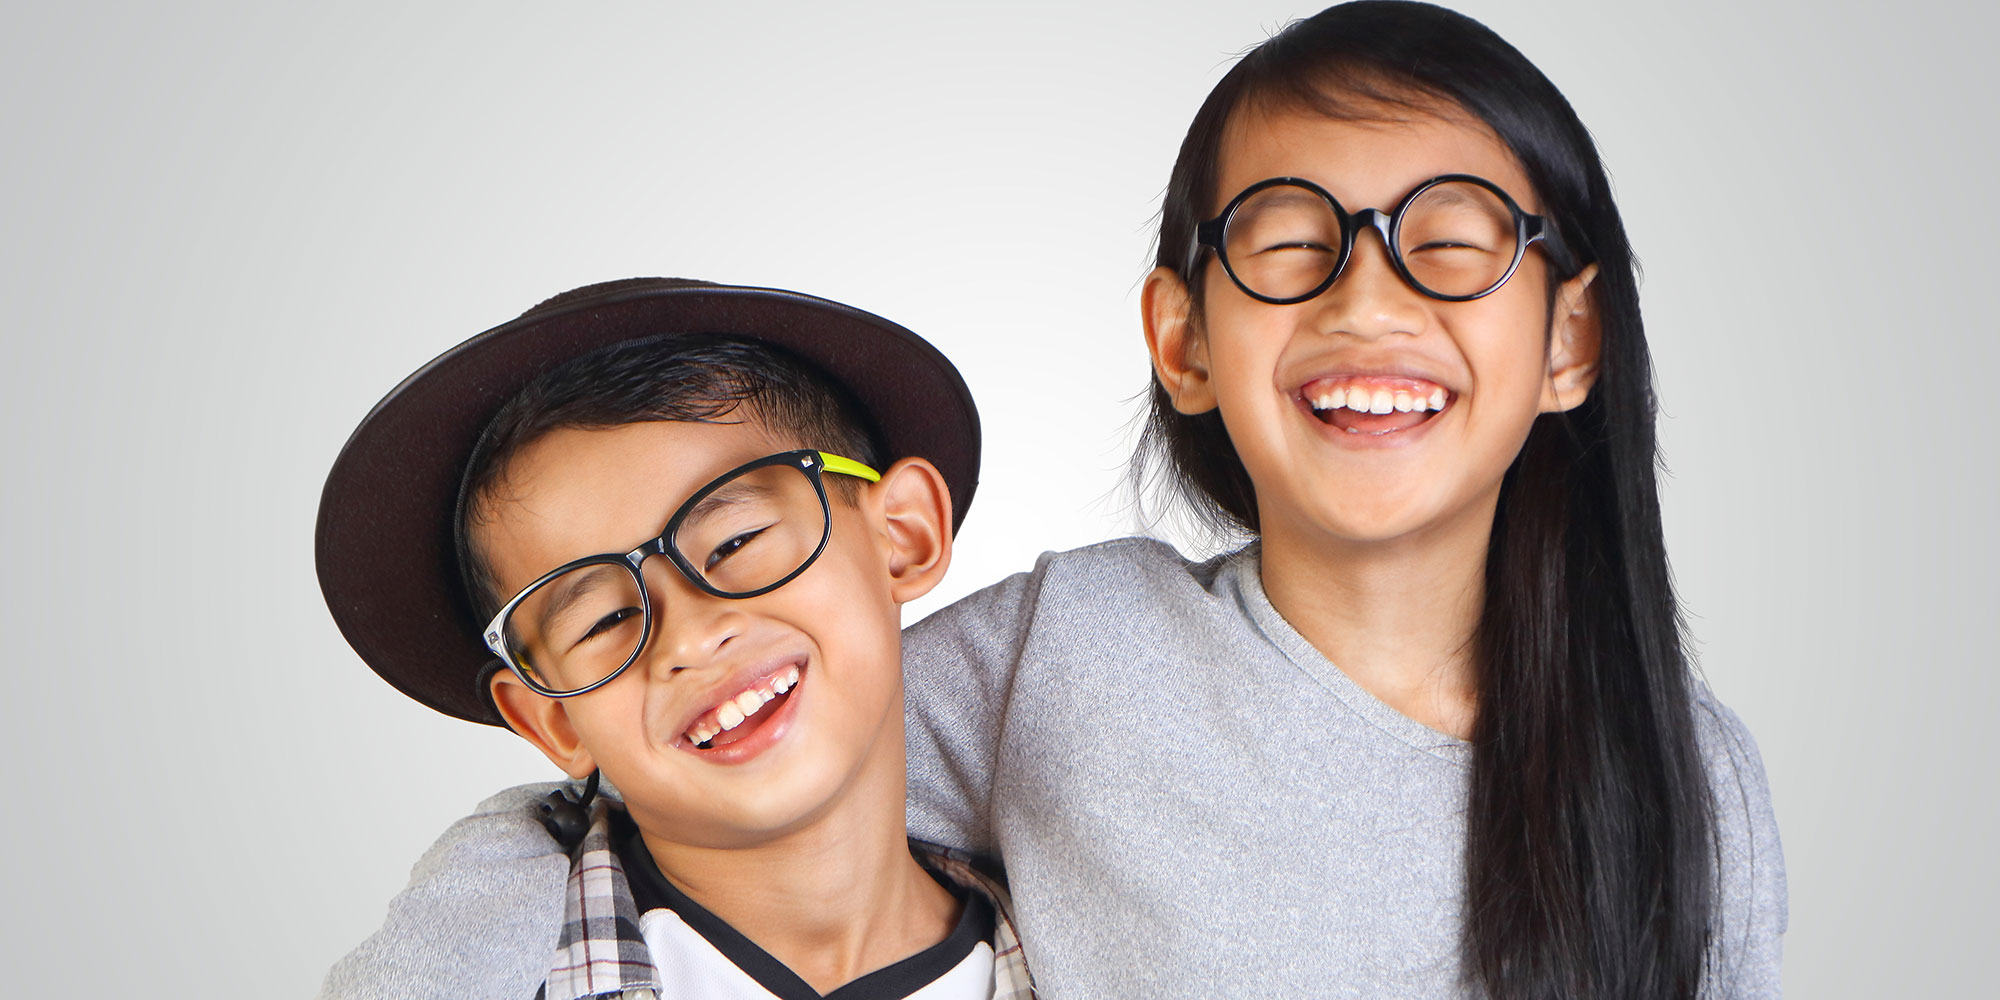 Two kids laughing and wearing fun glasses